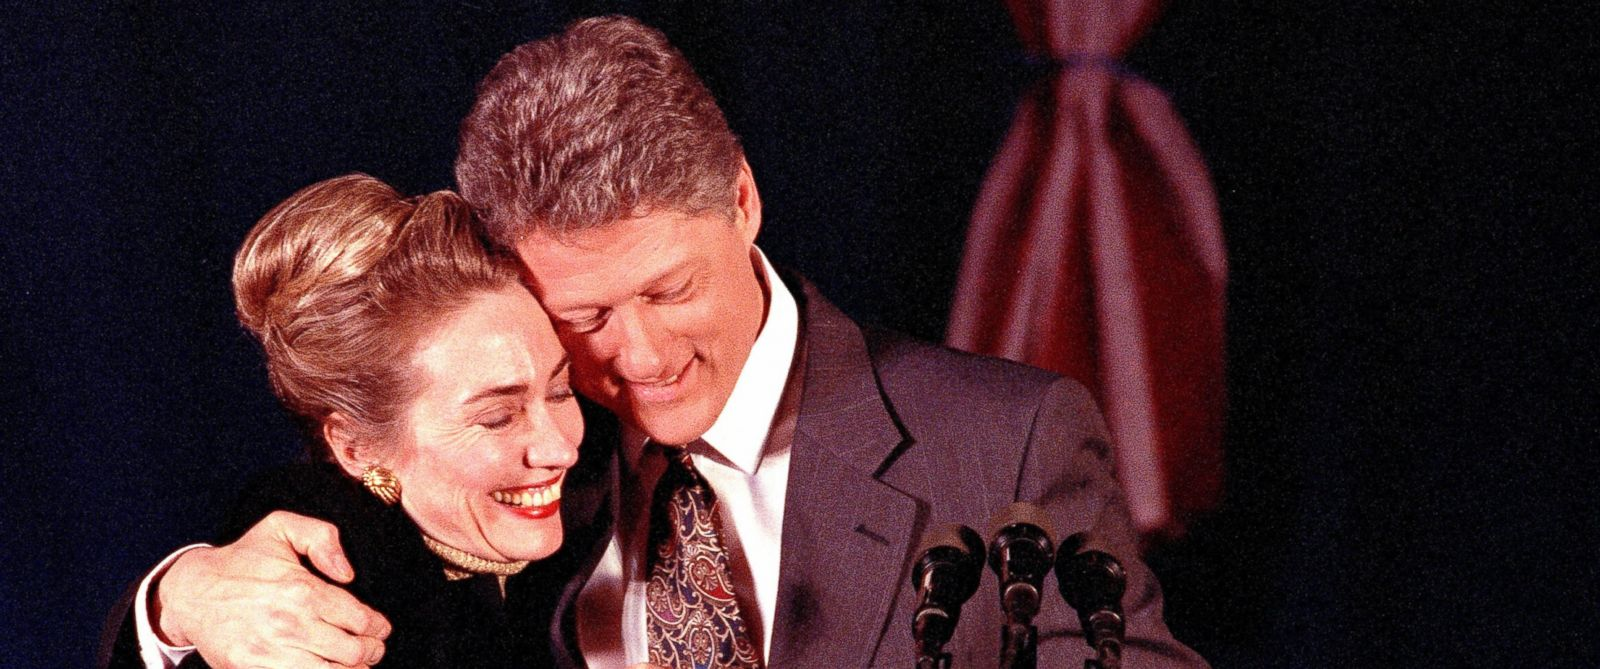 PHOTO: Democratic presidential hopeful Bill Clinton of Arkansas hugs his wife Hillary at Clintons election night party at the Merrimack Inn, in Merrimack, N.H., Feb. 18, 1992.